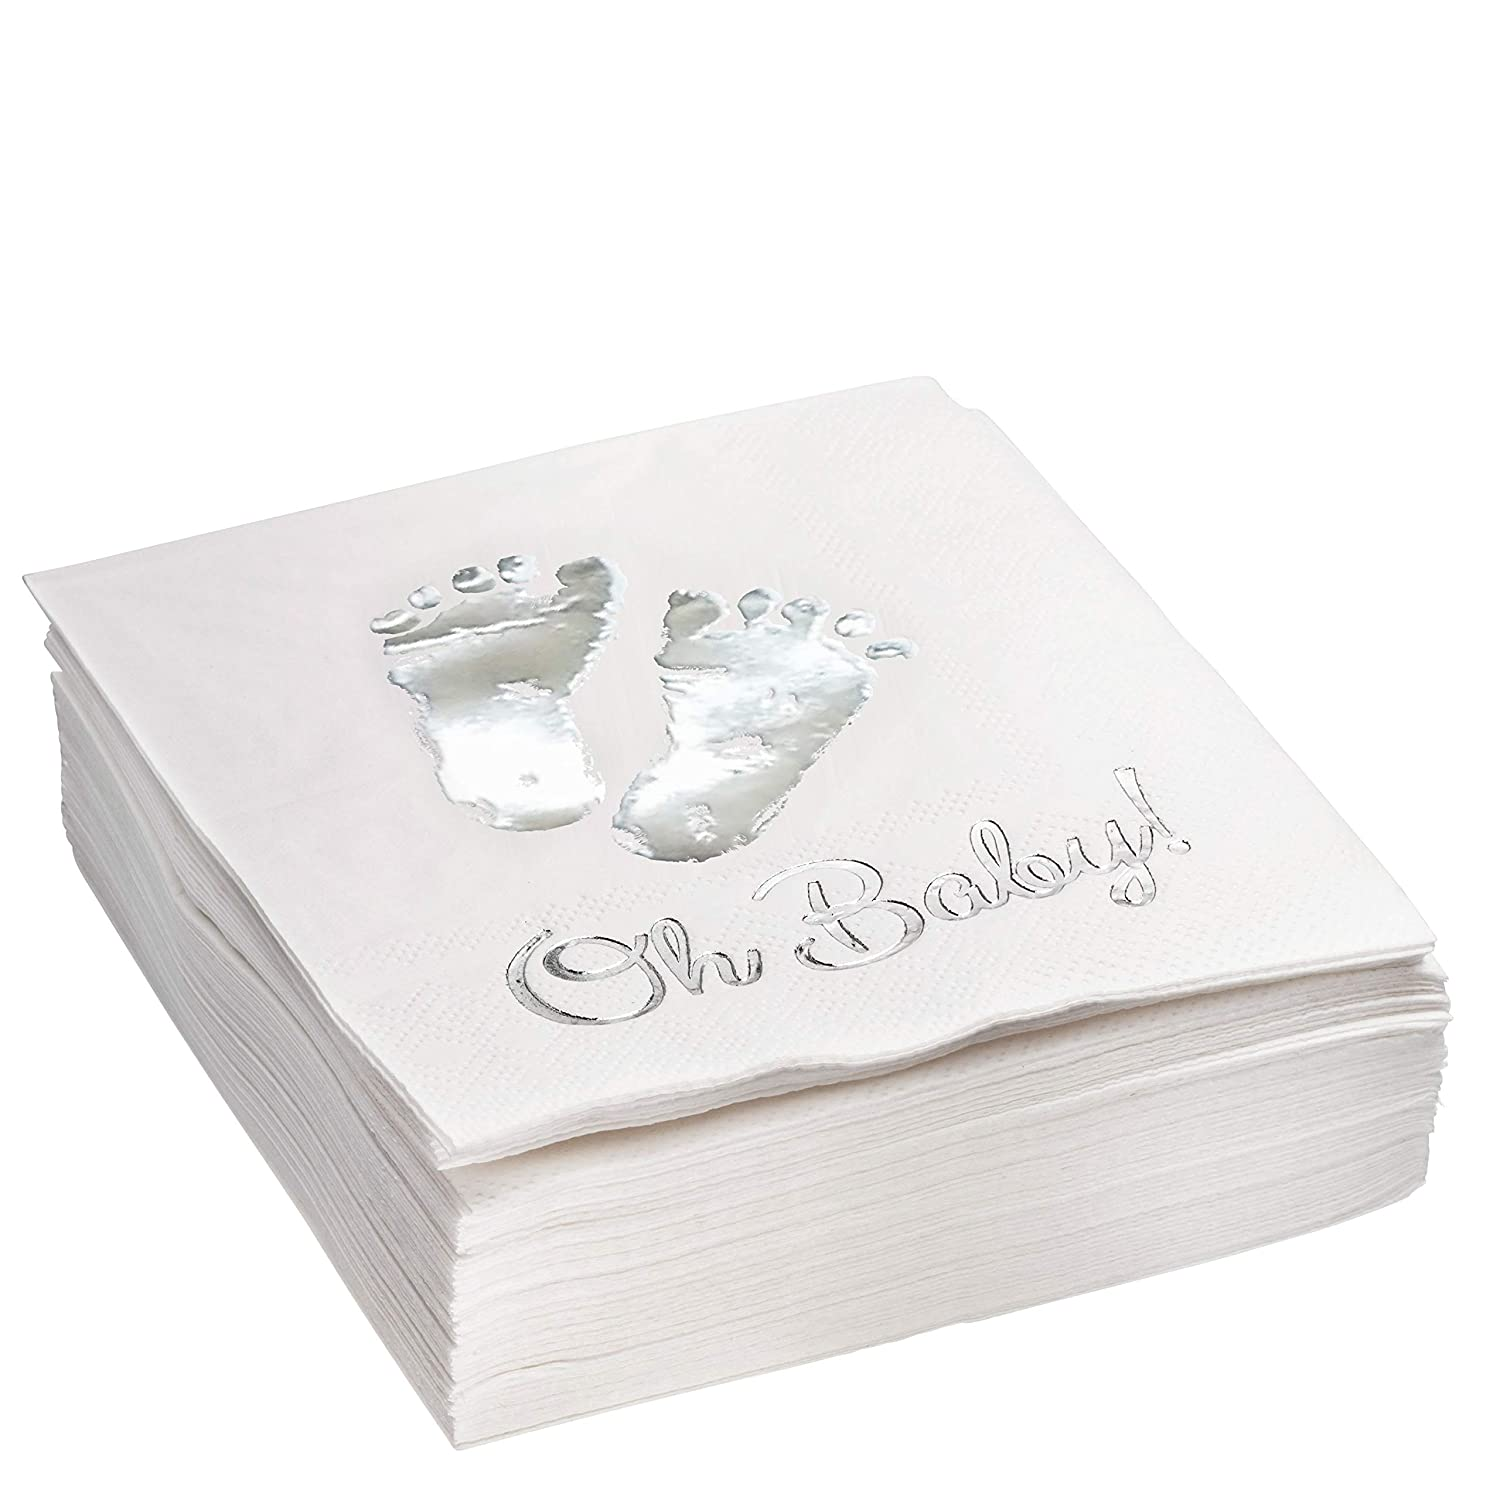 Burnished Silver OH BABY Metallic Foil-Stamped Feet Beverage Napkins, 5x5 Inch, pack of 50, 3-Ply – Gender Reveal – Baby Shower – Homecoming Party Décor